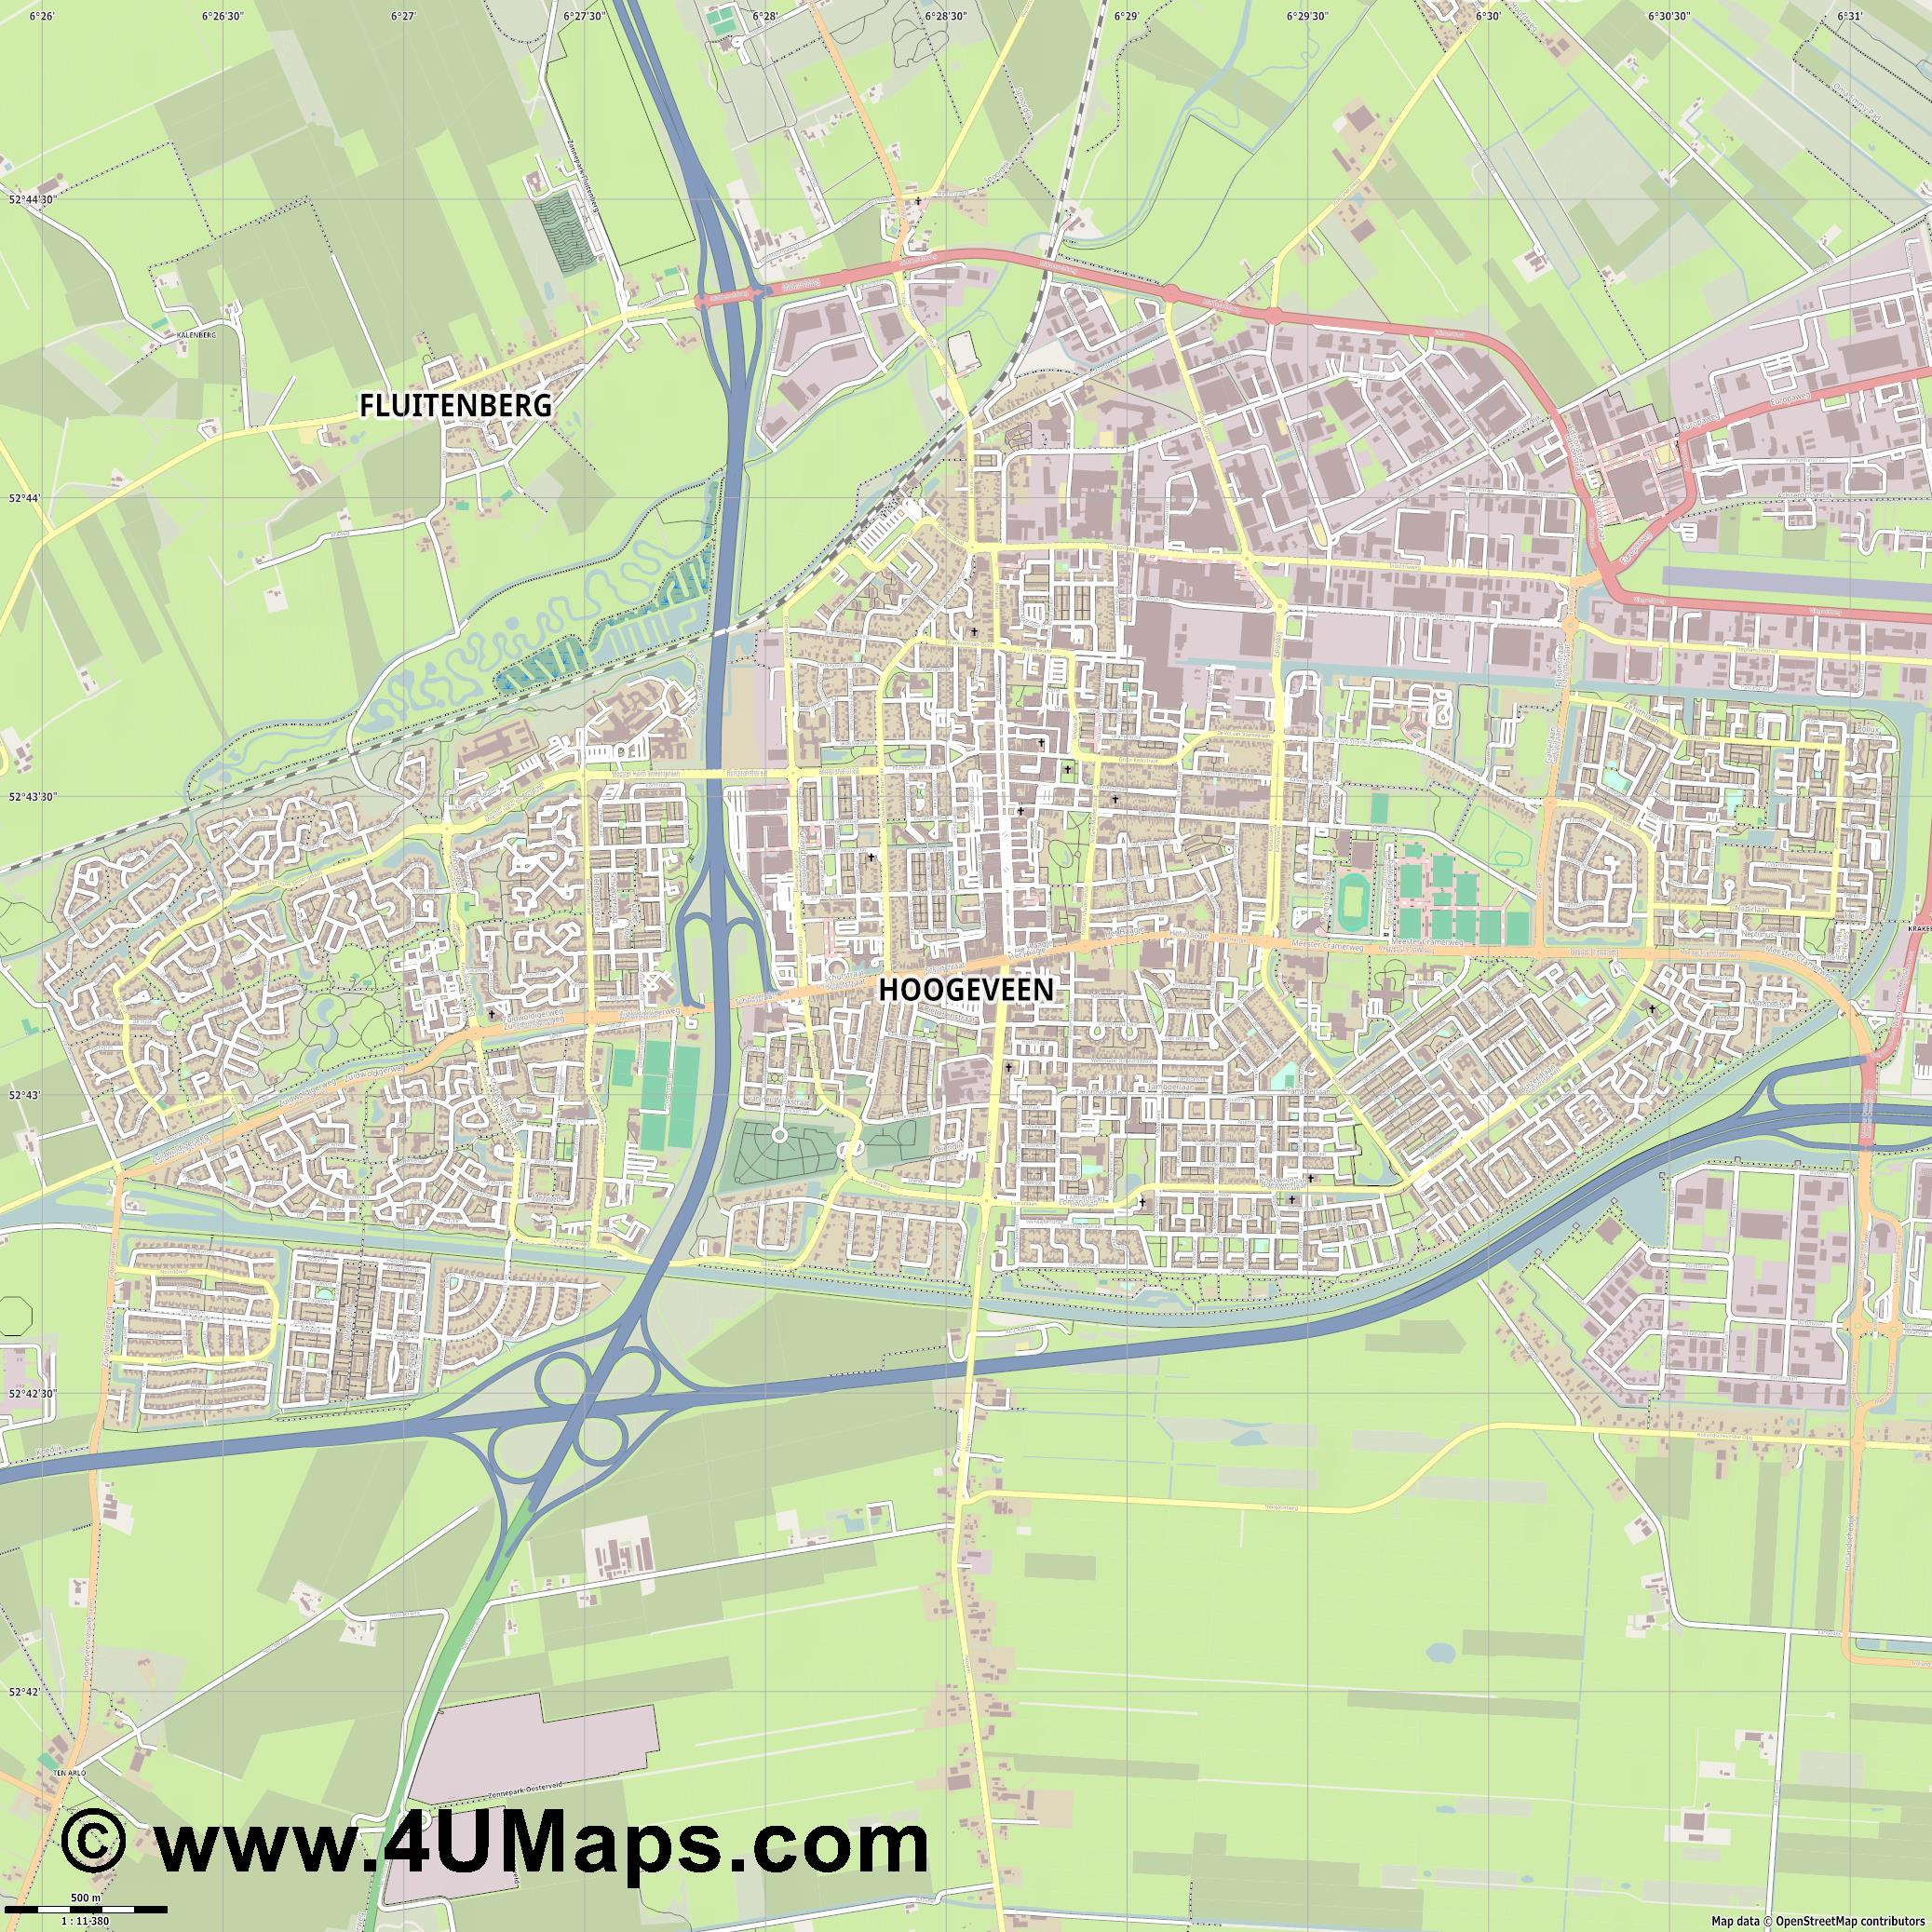 Hoogeveen  jpg ultra high detail preview vector city map